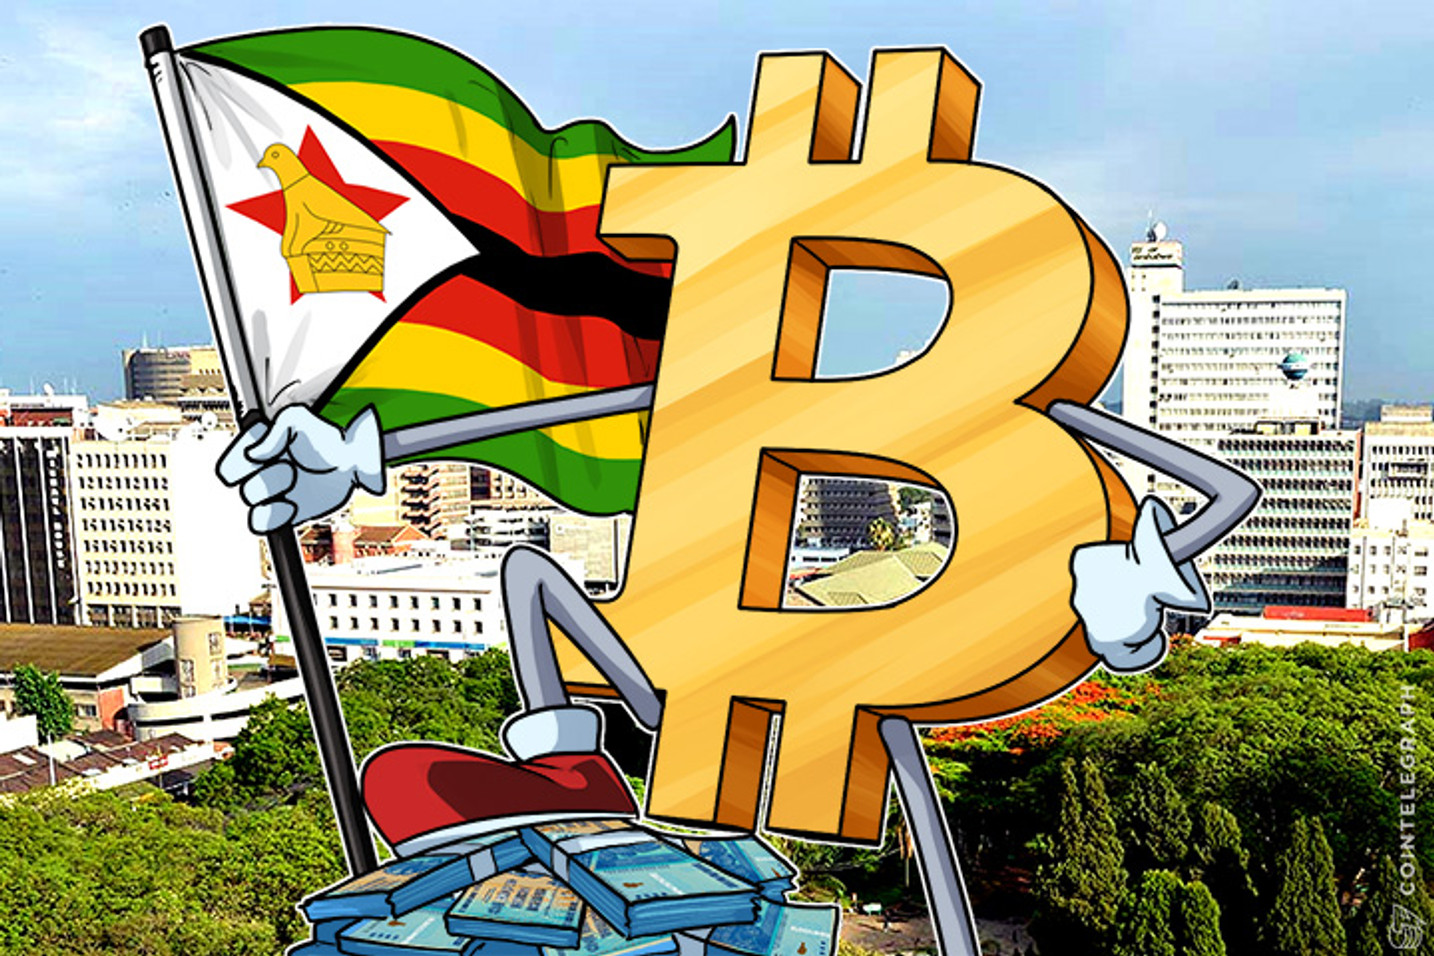 Zimbabweans Have No Choice But to Accept New Currency but Bitcoin is Best